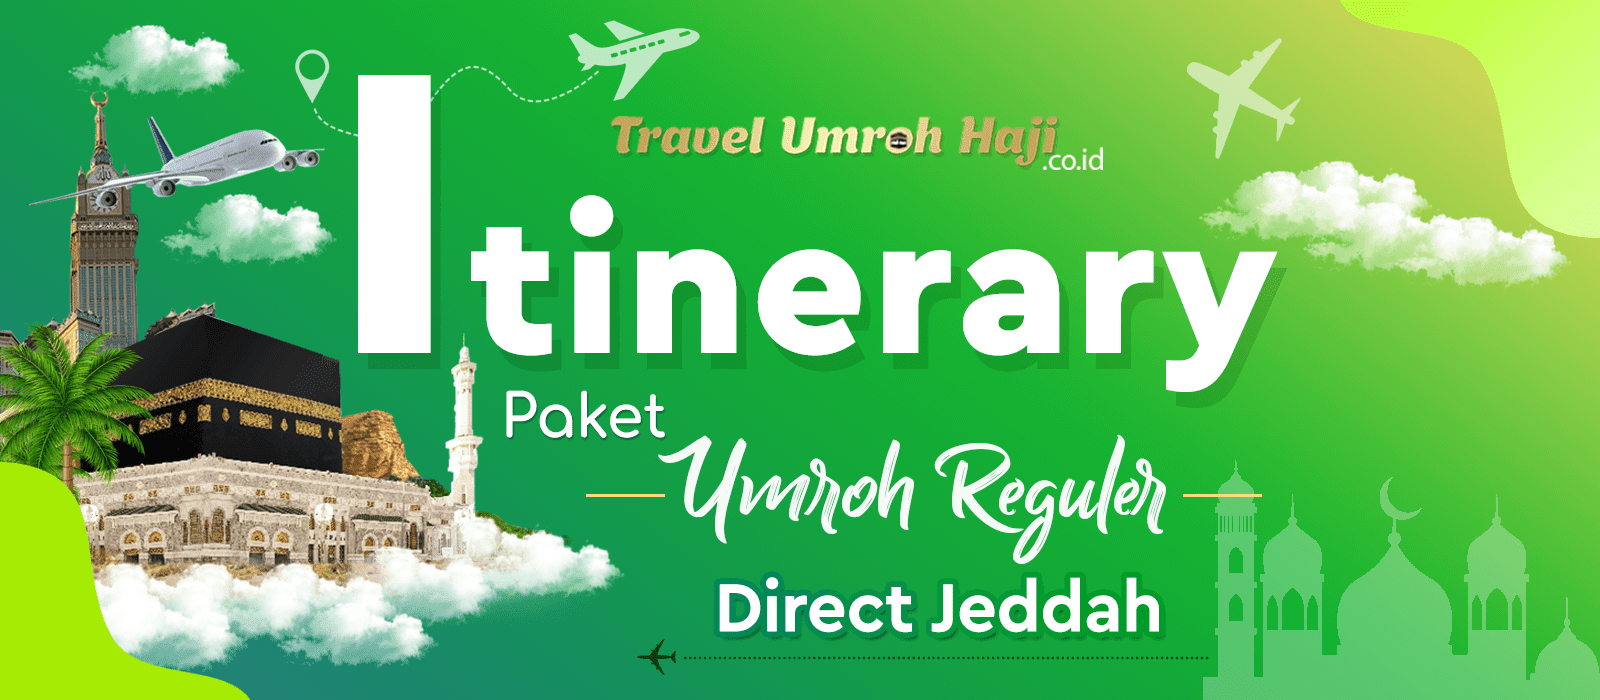 Program Itinerary Umroh 9 Hari Direct Jeddah